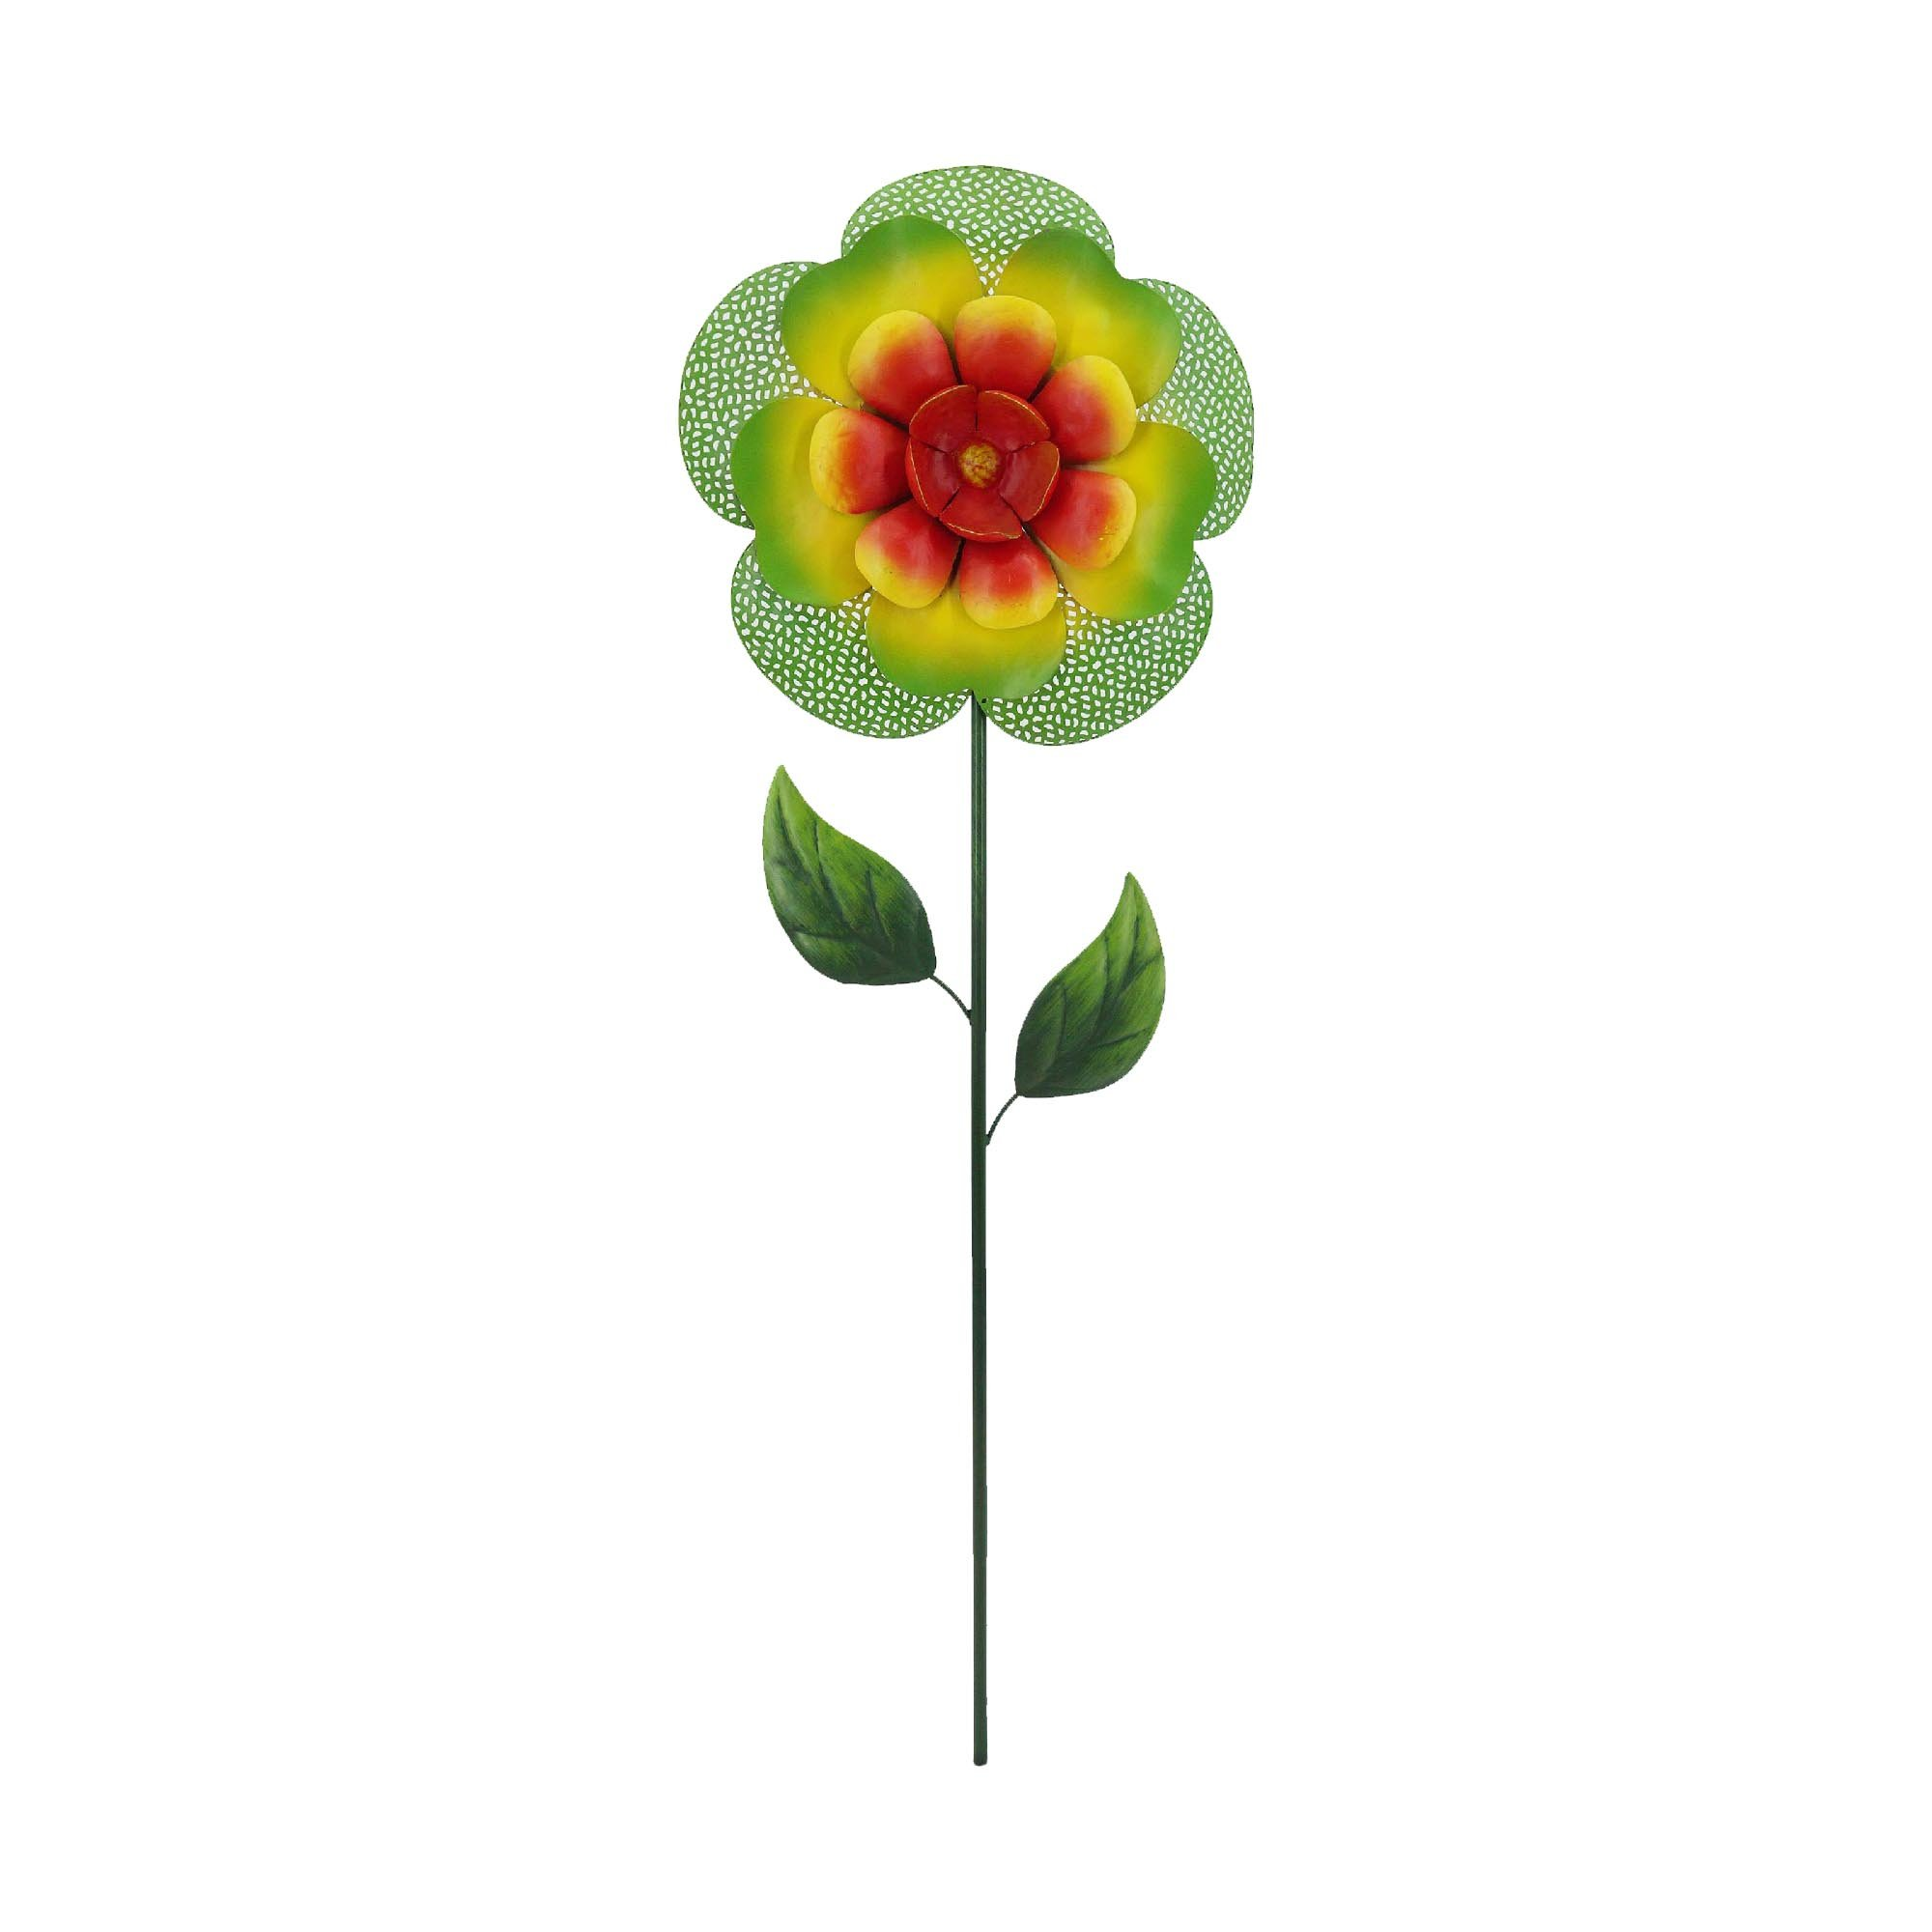 Creative Motion 14282-8 Metal Garden Stake, 9.875'' x 2'' x 36.25'' H, Multi Color